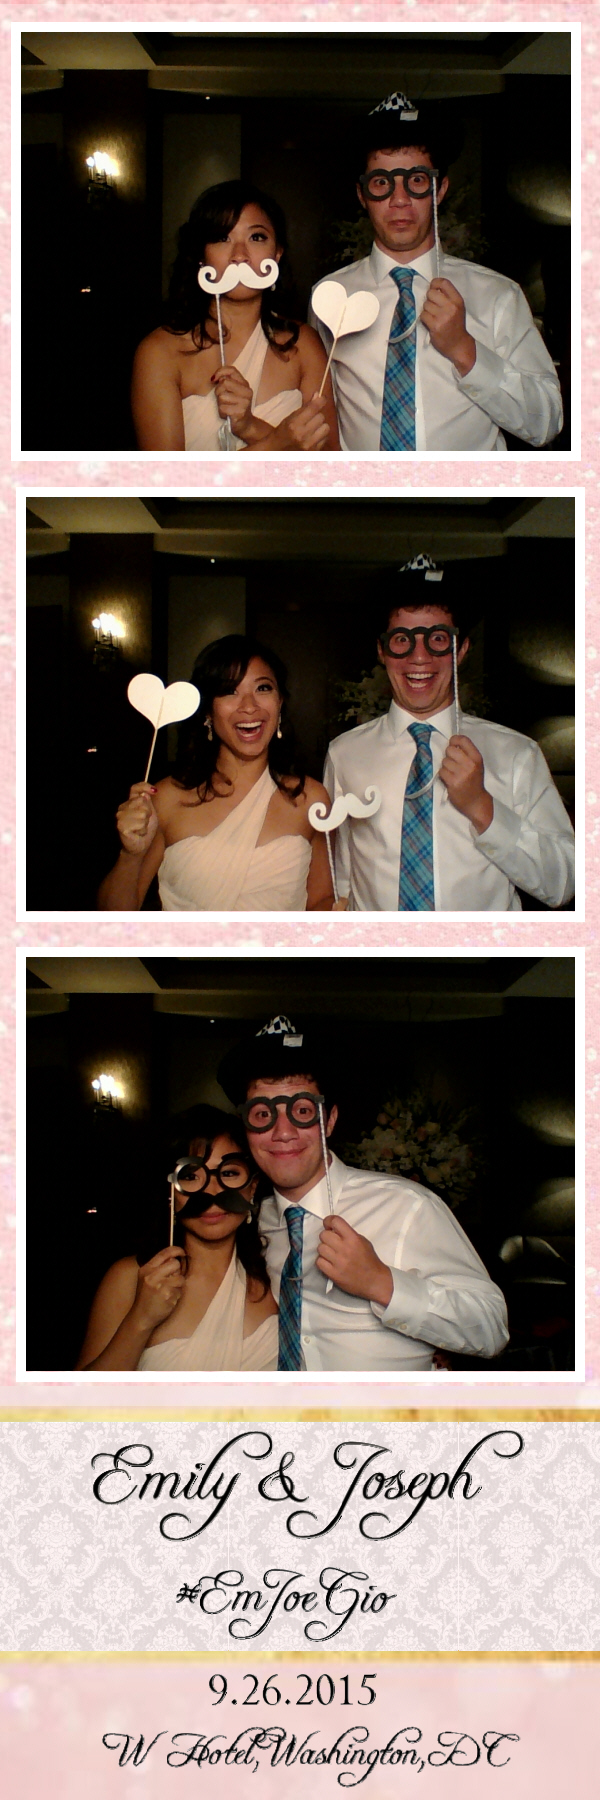 Guest House Events Photo Booth E&J (4).jpg